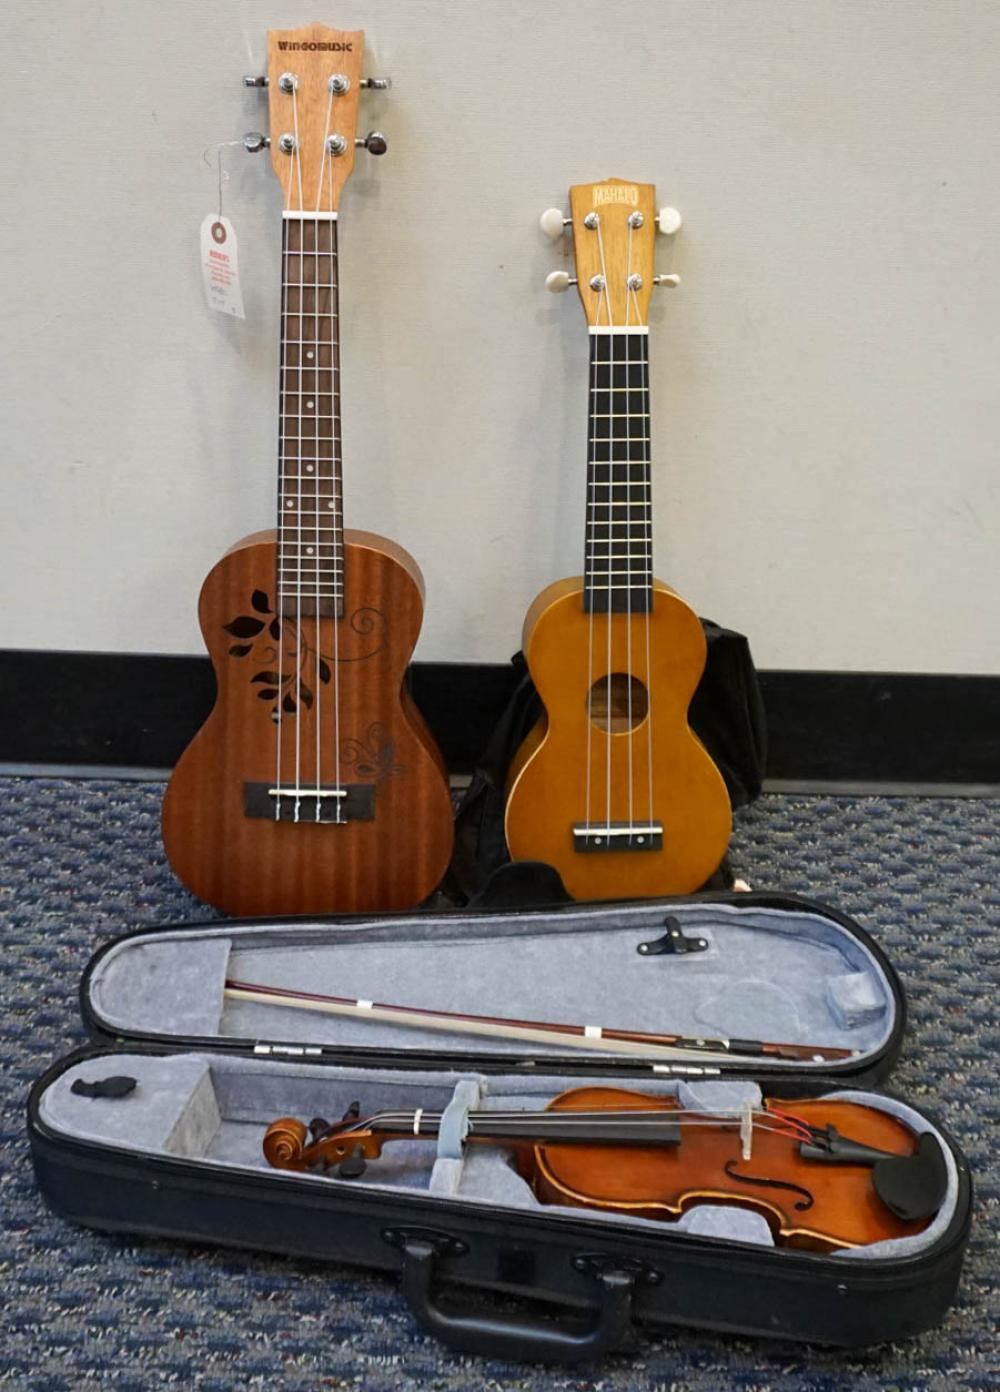 Wingomusic Youth Classical Acoustic Guitar, Mahalo Ukulele, and Carina Youth Violin and Bow in Travel Case, L: 20-7/8 in